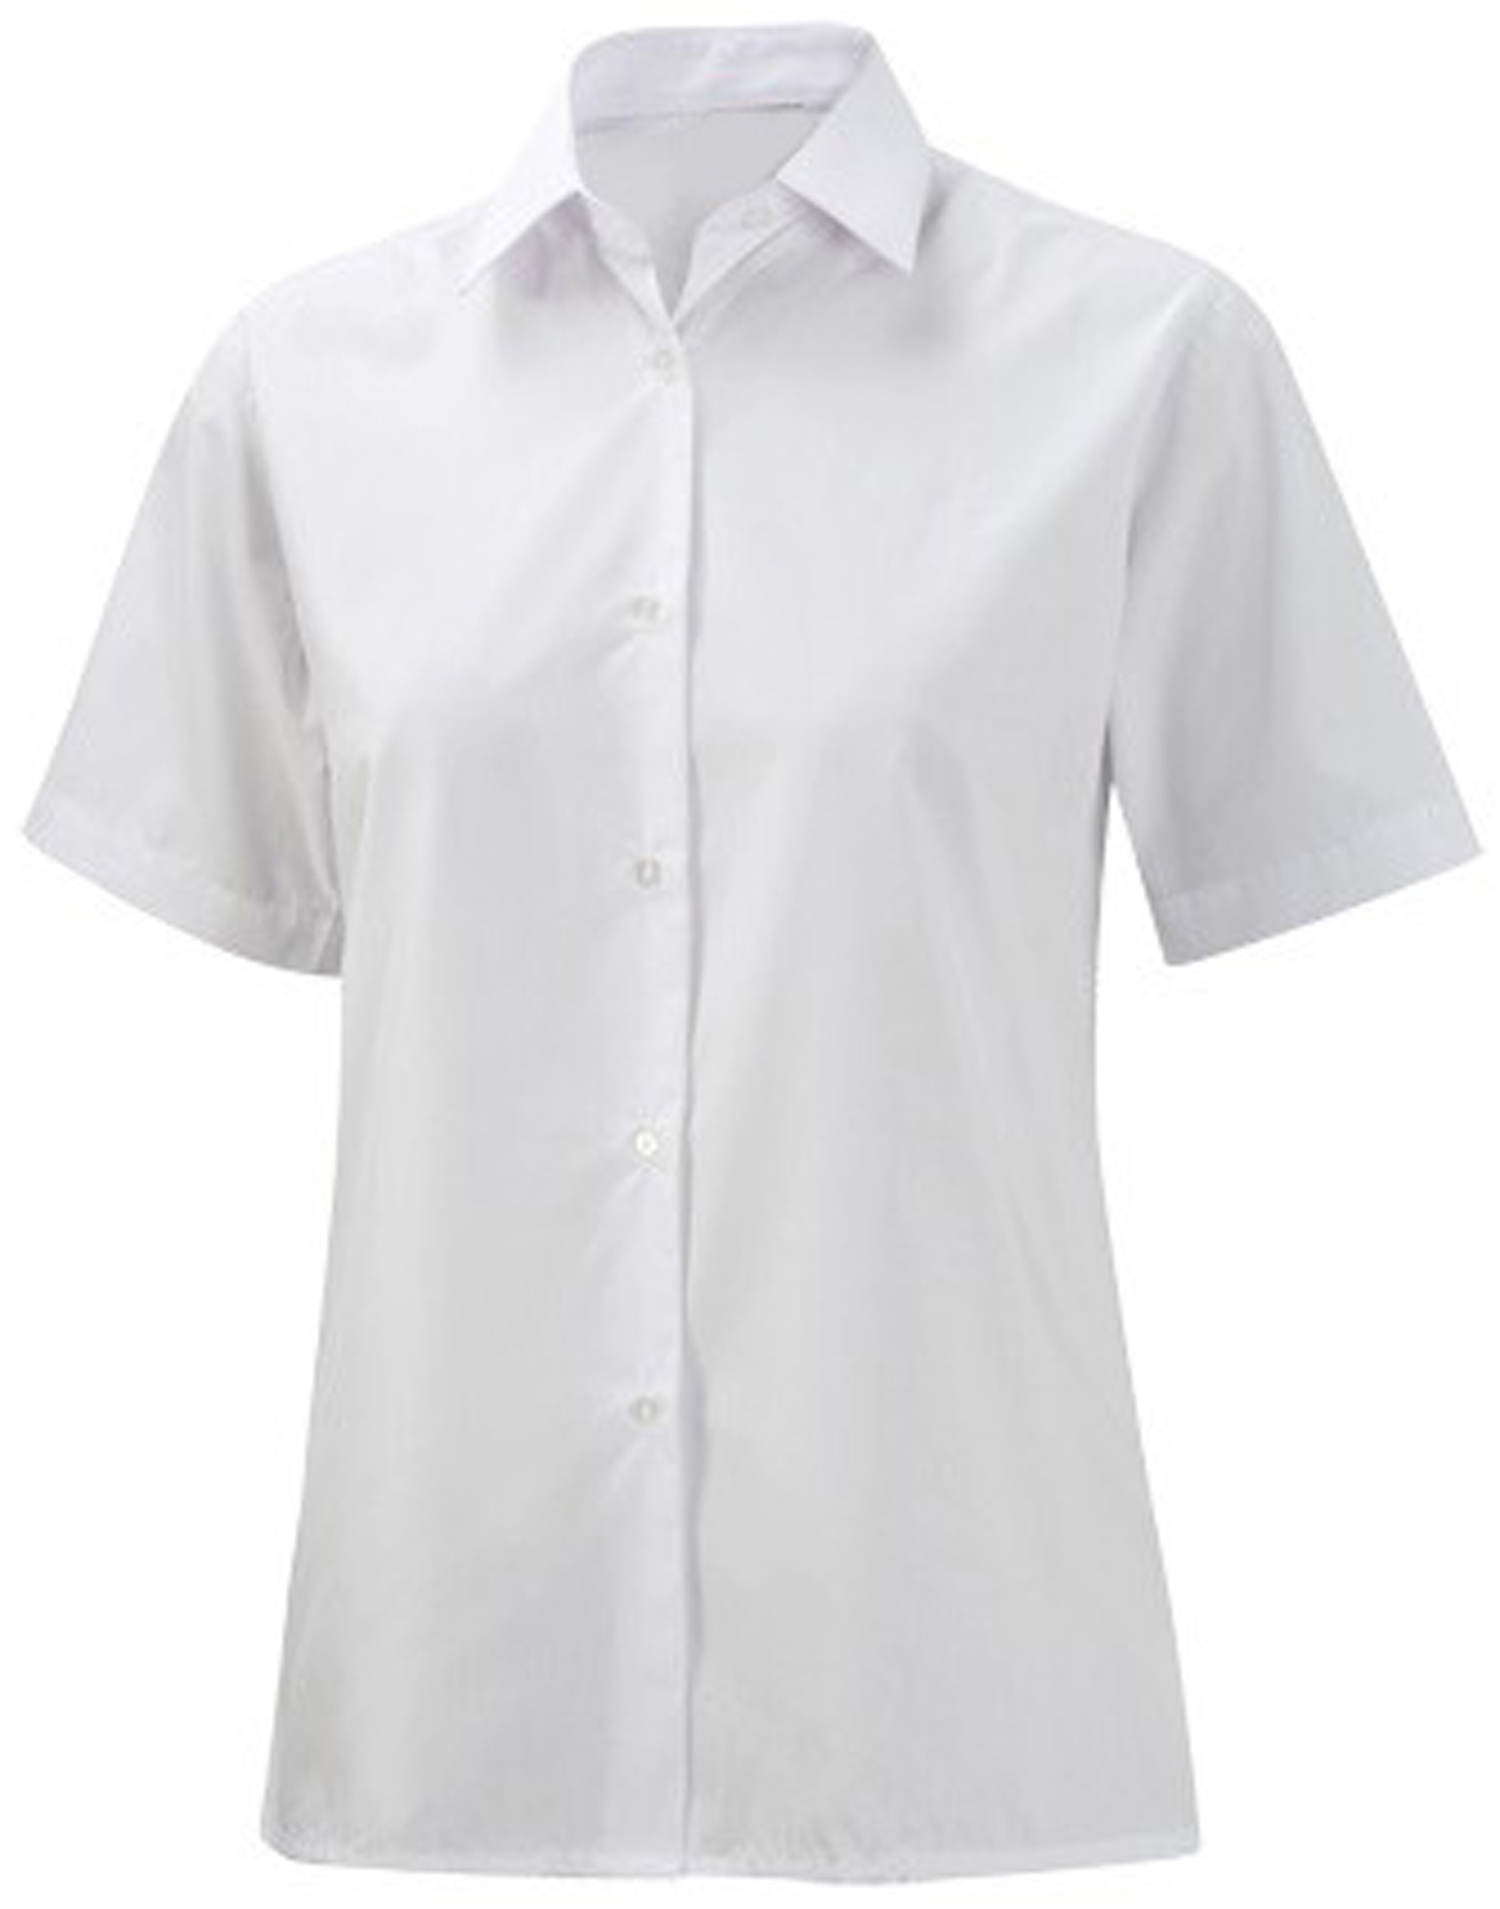 Short Sleeved Girls School Uniform Smart Blouse Only